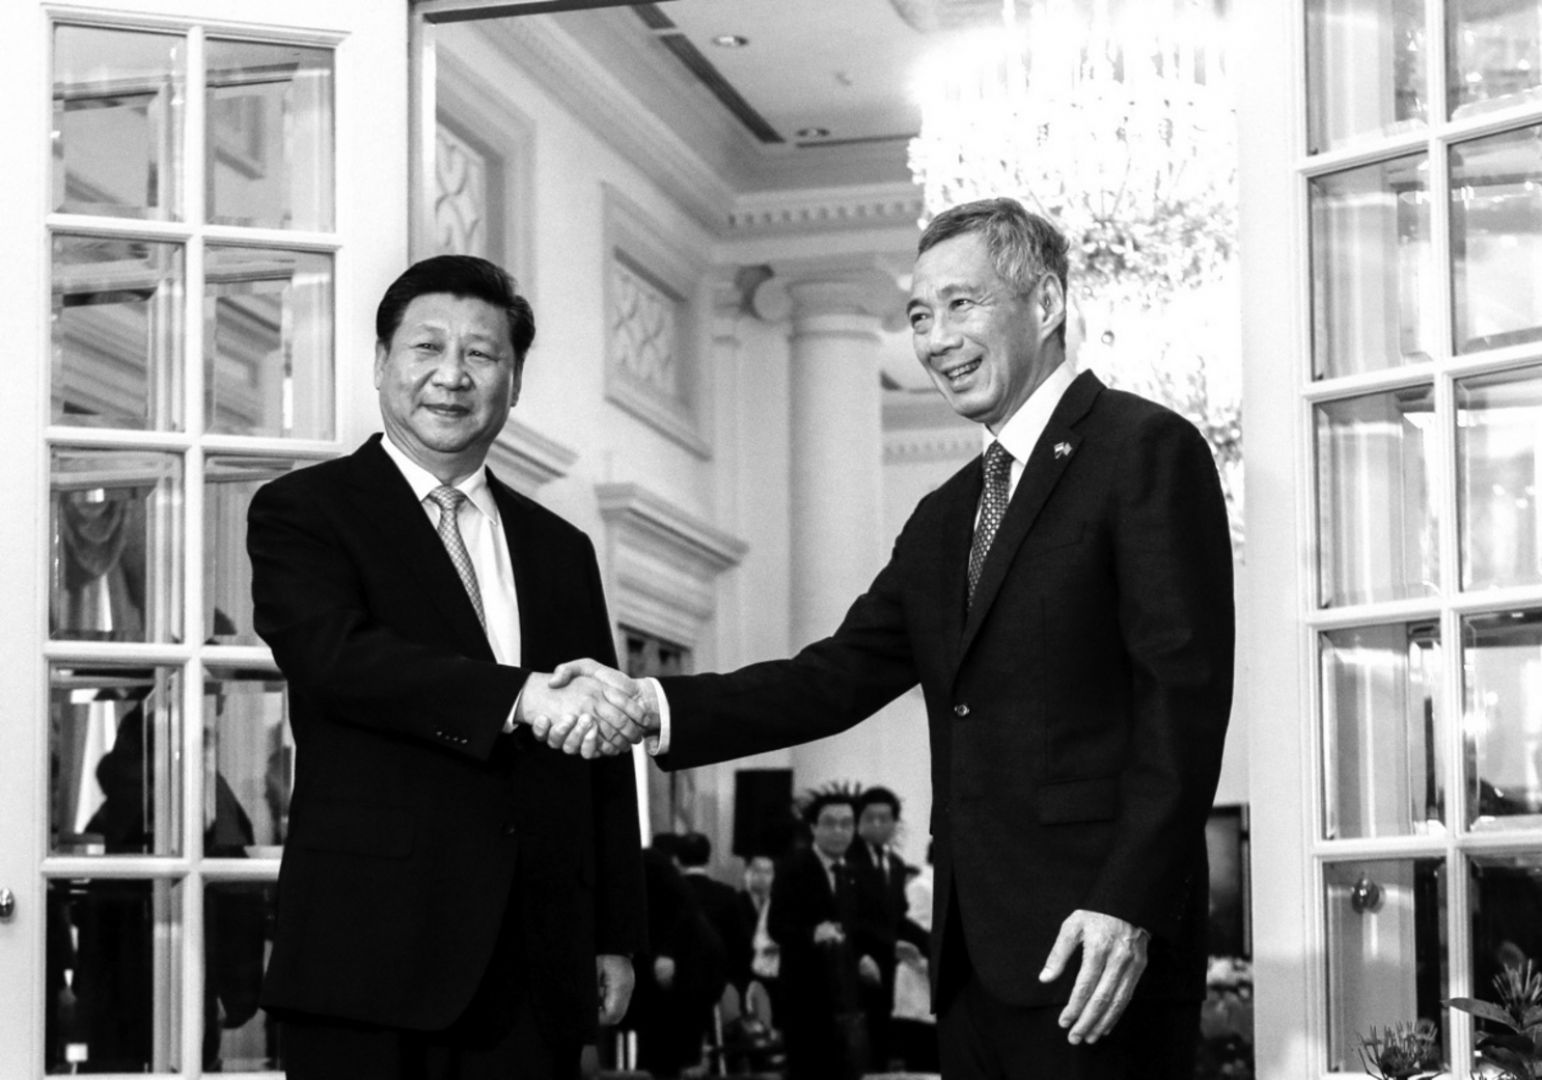 Chinese President Xi Jinping(L) and Singapore Prime Minister Lee Hsien Loong shake hands for the media at the Istana presidential palace in Singapore, November 7, 2015. REUTERS/Wallace Woon/Pool